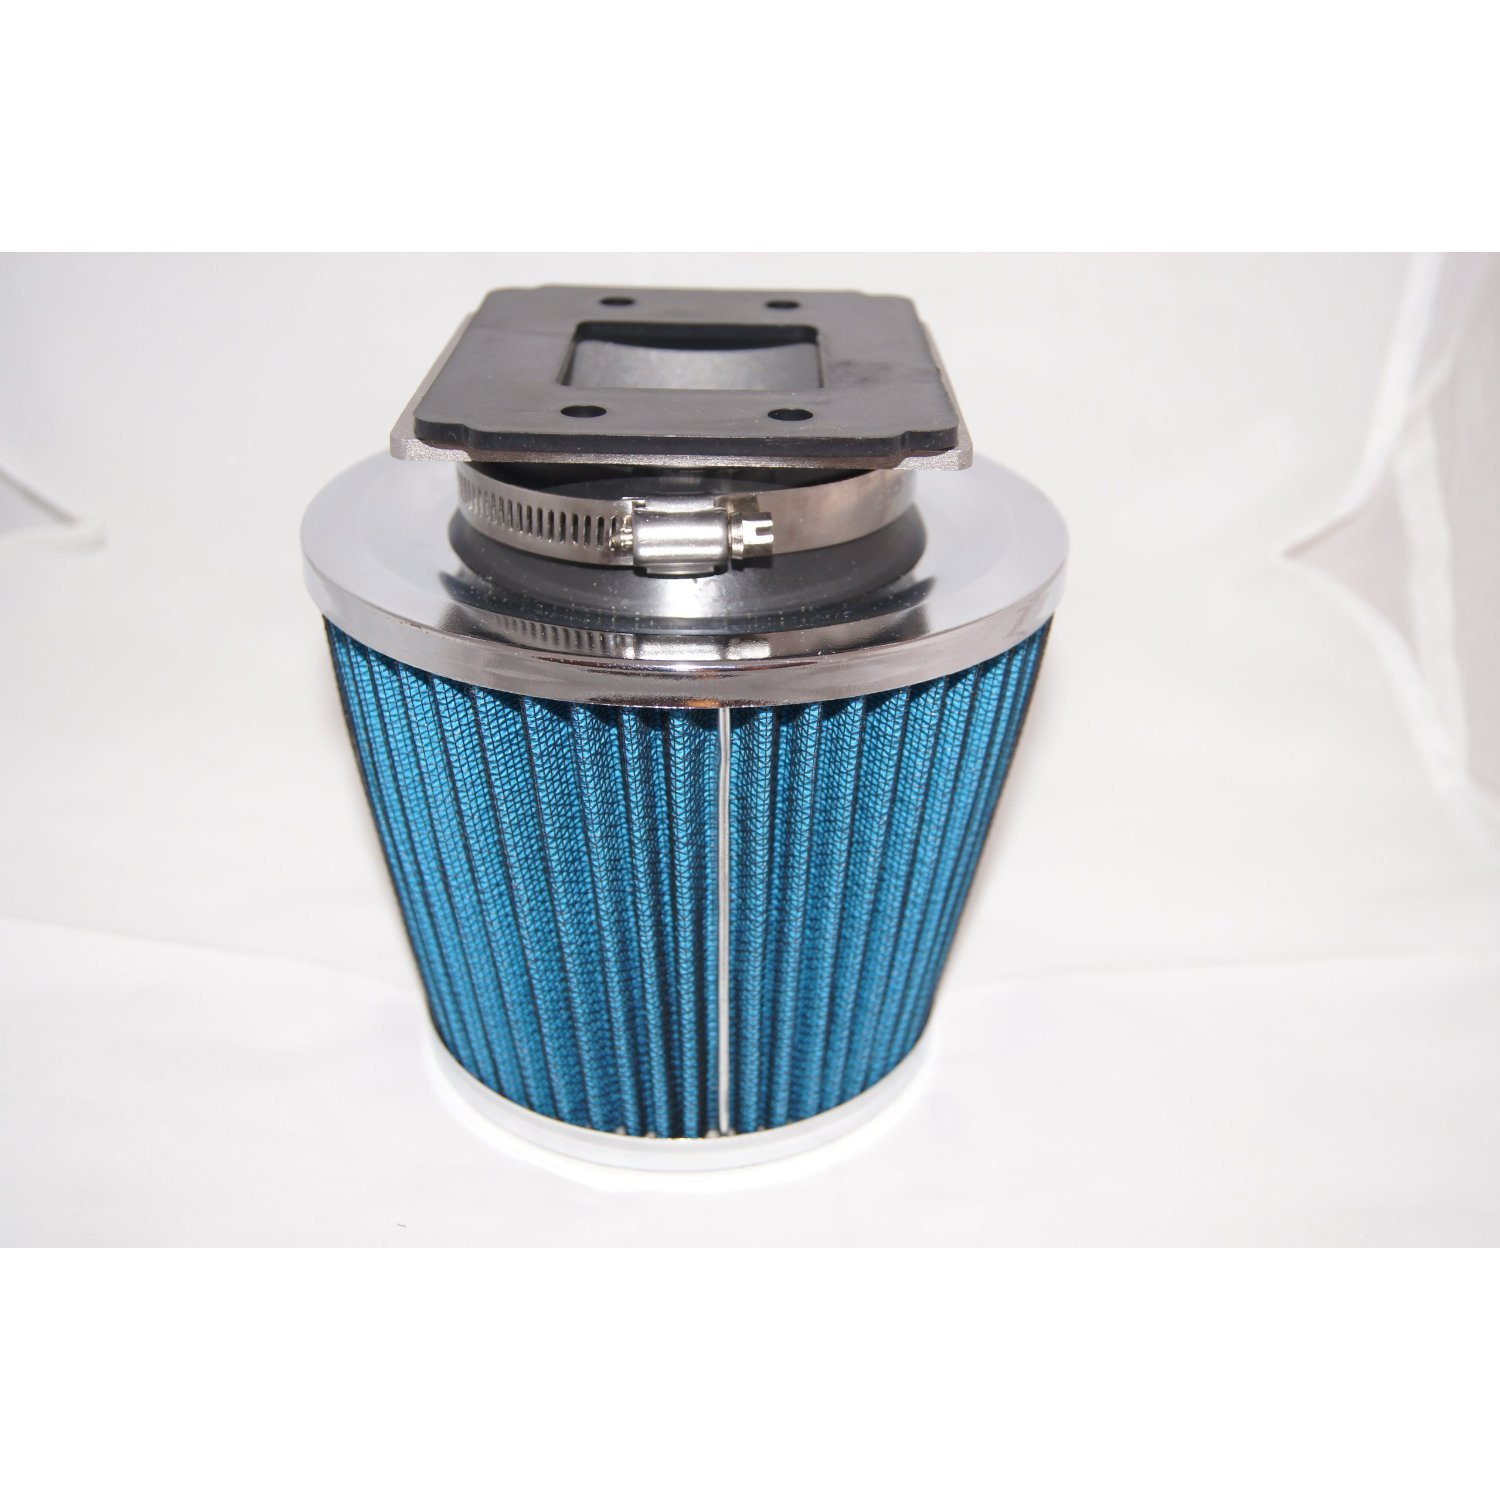 "90 91 92 93 94 95 96 97 98 Protege MX3 Miata Air Intake Filter MAF Adapter + 3"" Air Filter (Include Blue Air Filter) by High performance parts (Image #1)"